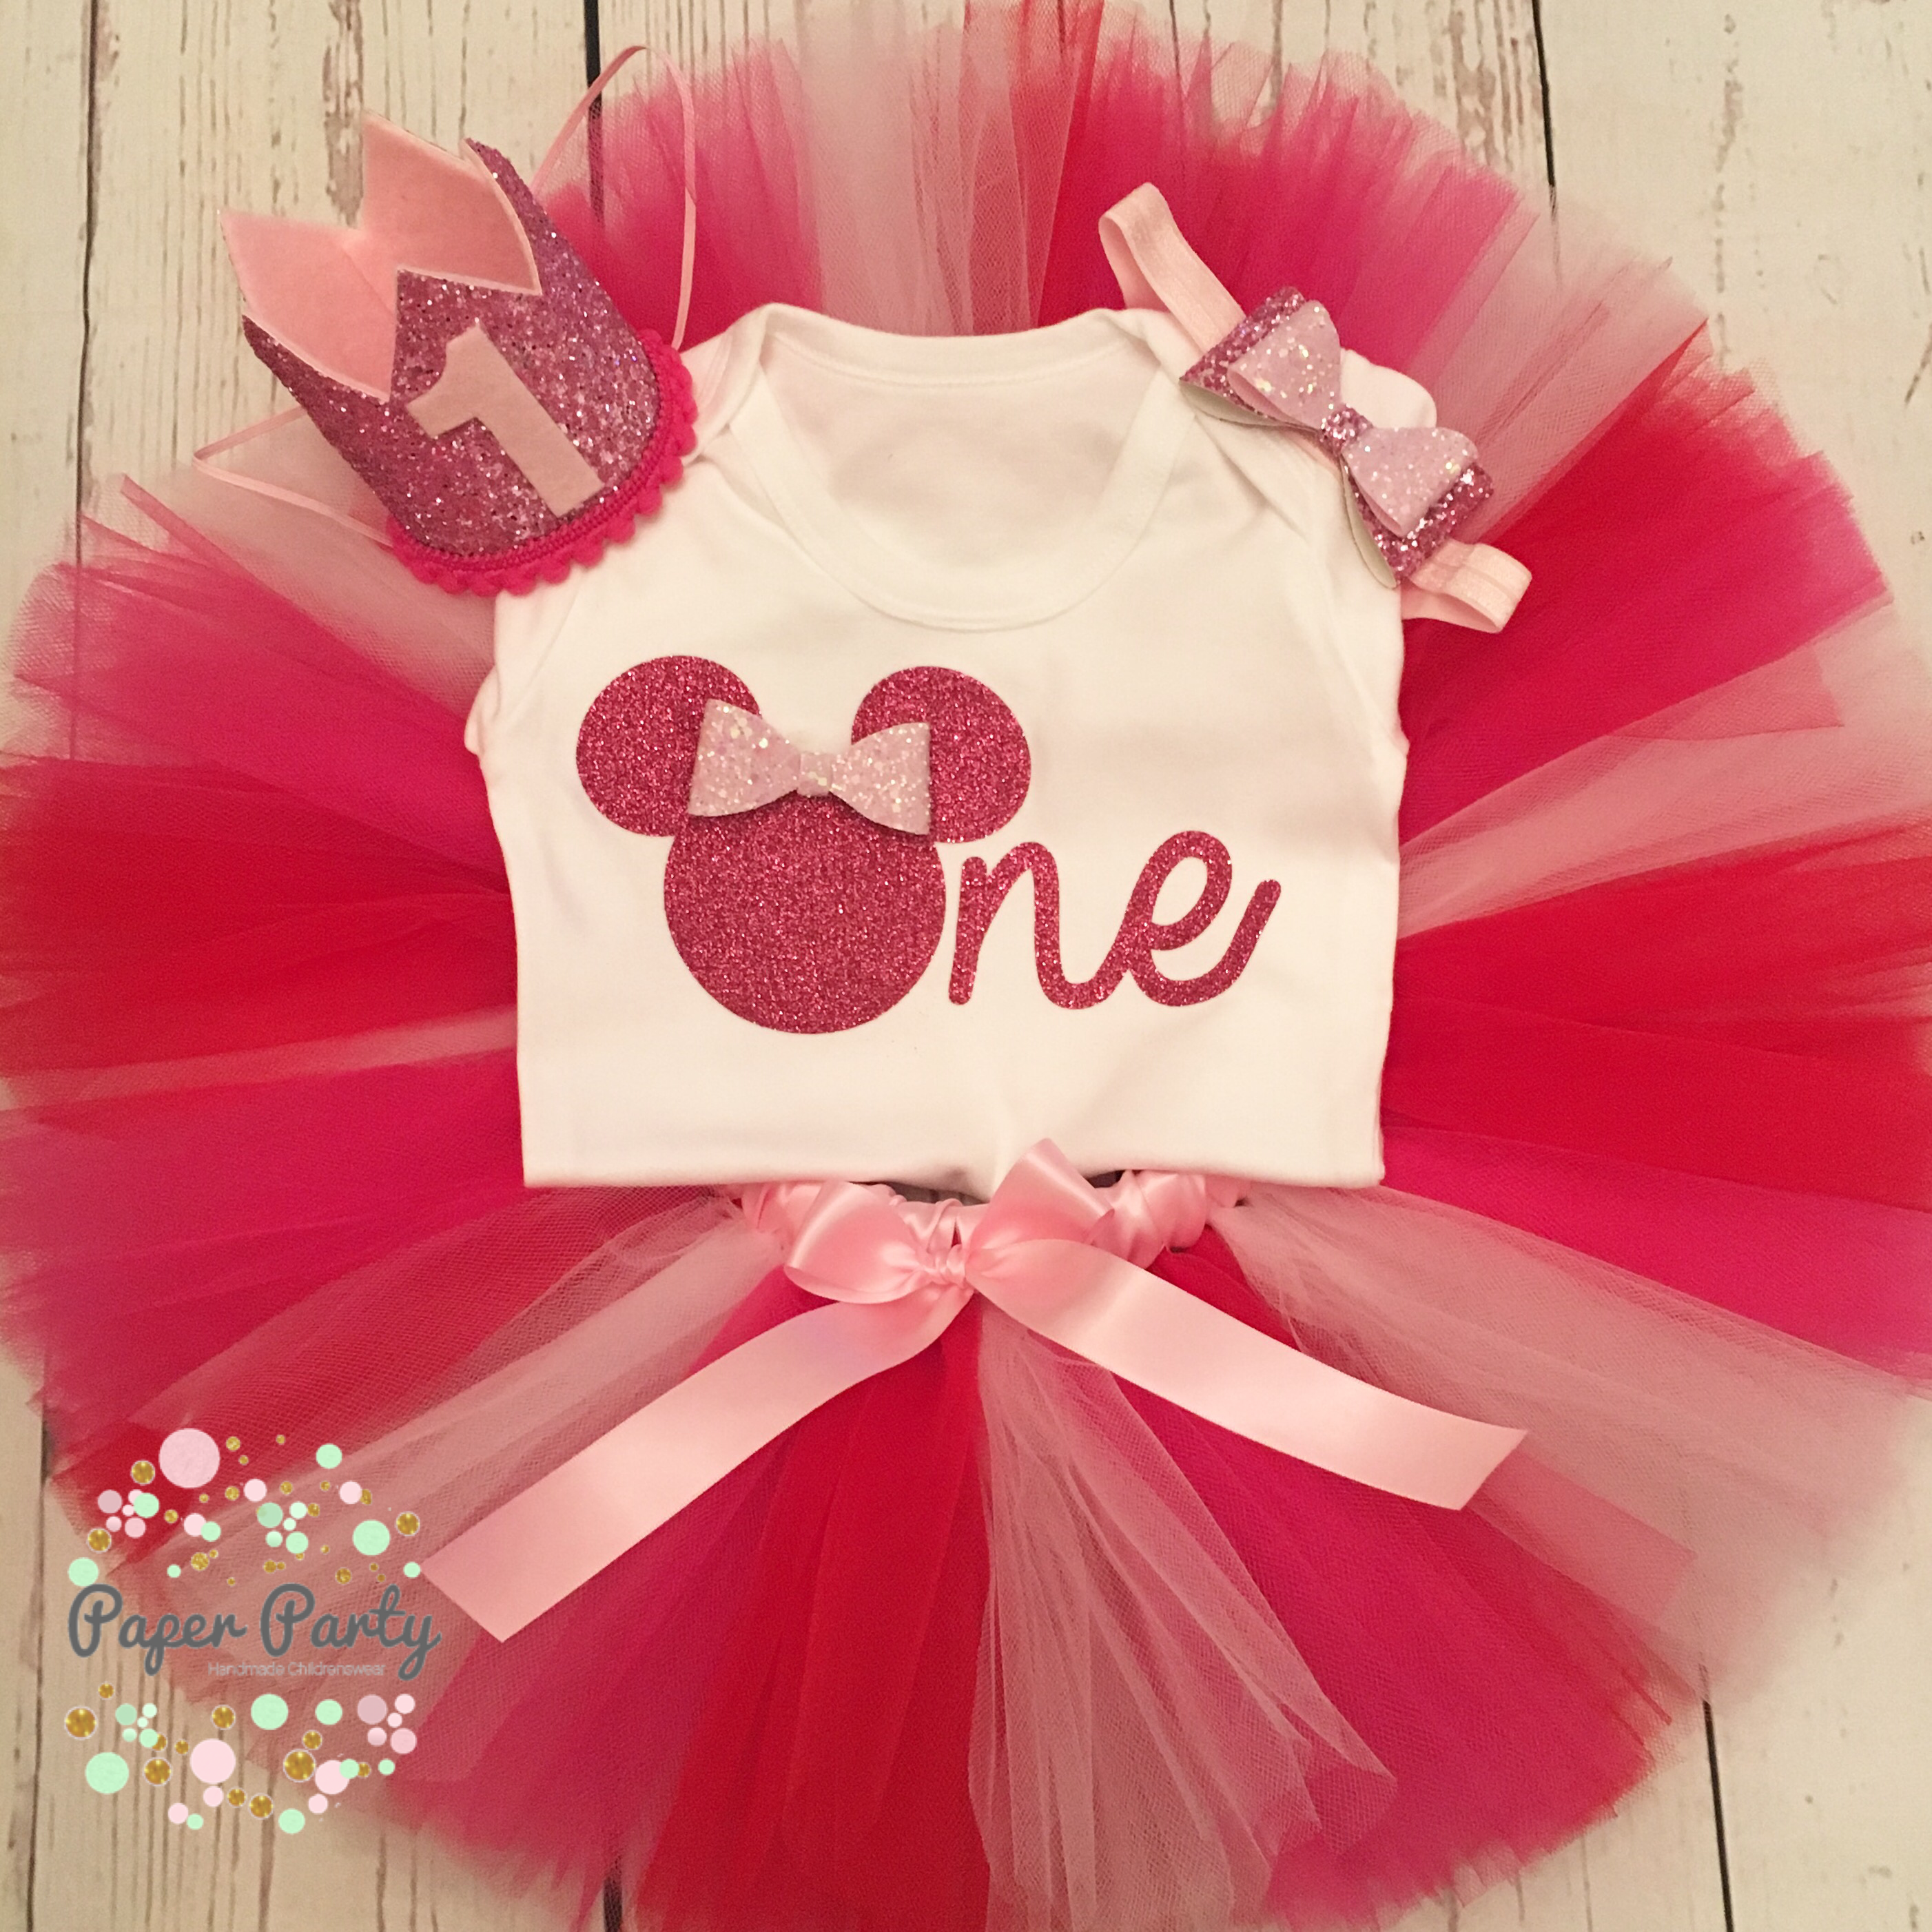 Minnie Mouse brights 1st birthday cake smash outfit by Paper Party